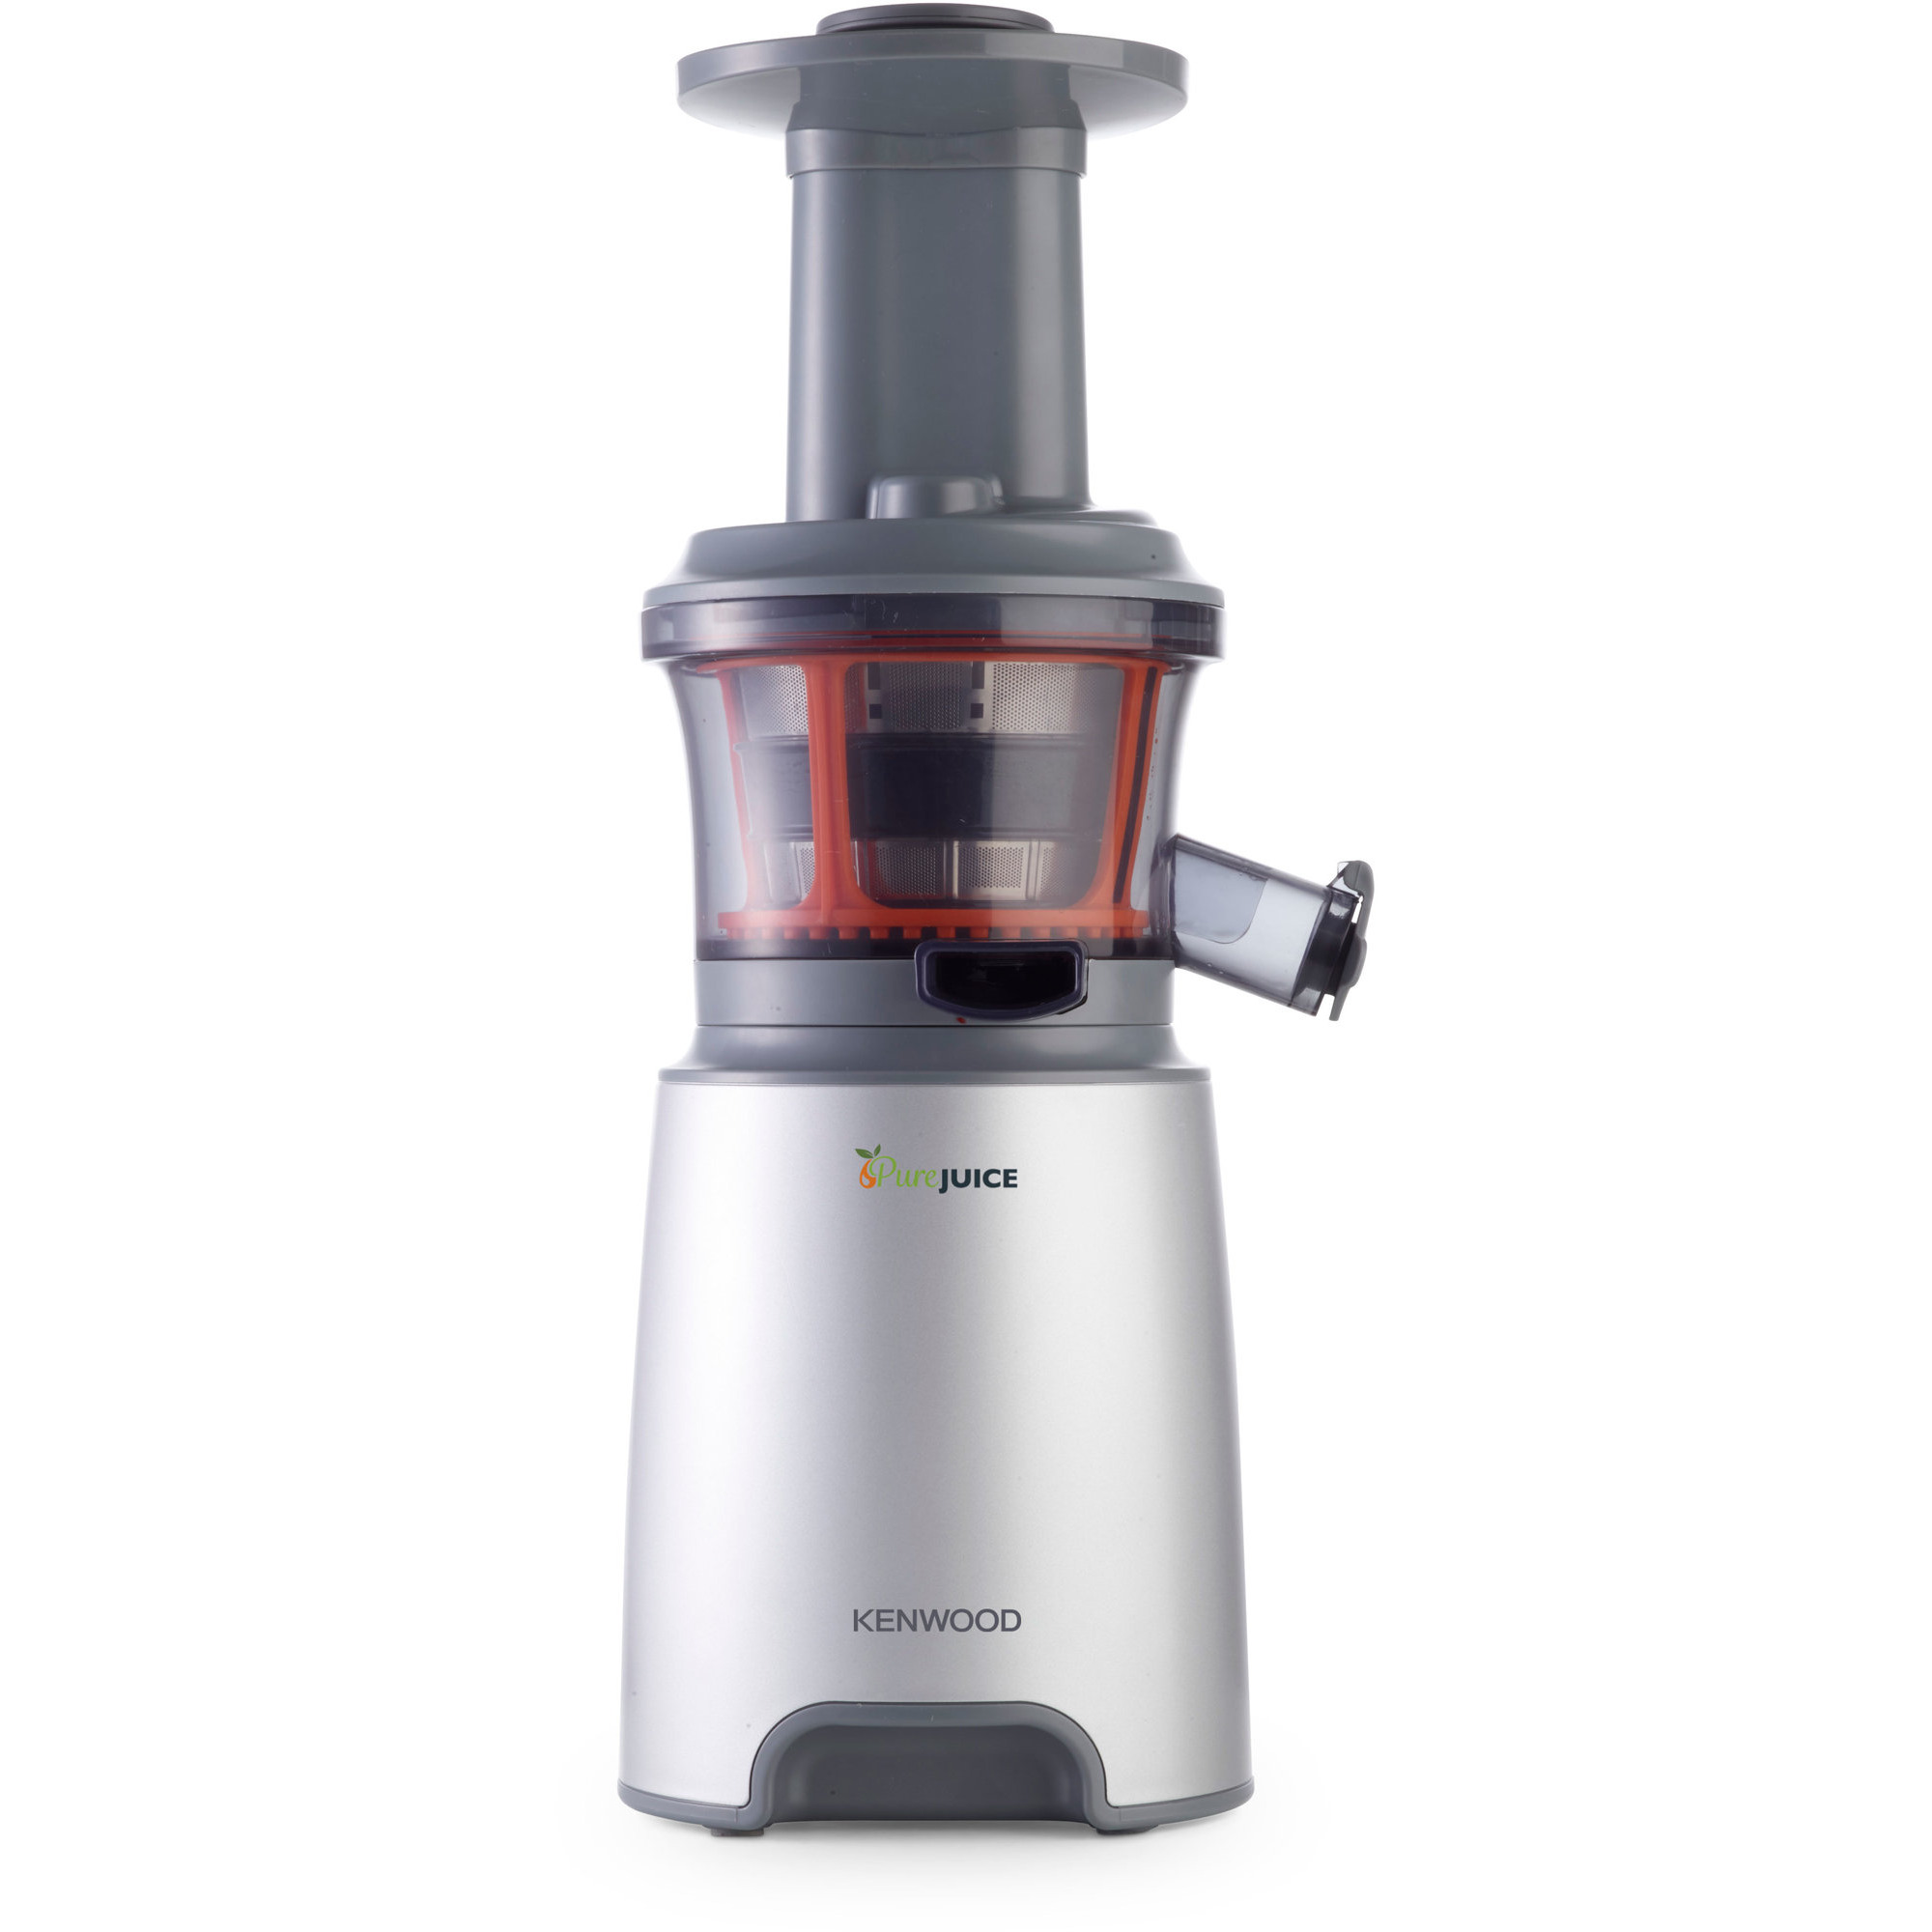 Slow Juicer Til Kenwood : best i test juicer - Prissok - Gir deg laveste pris